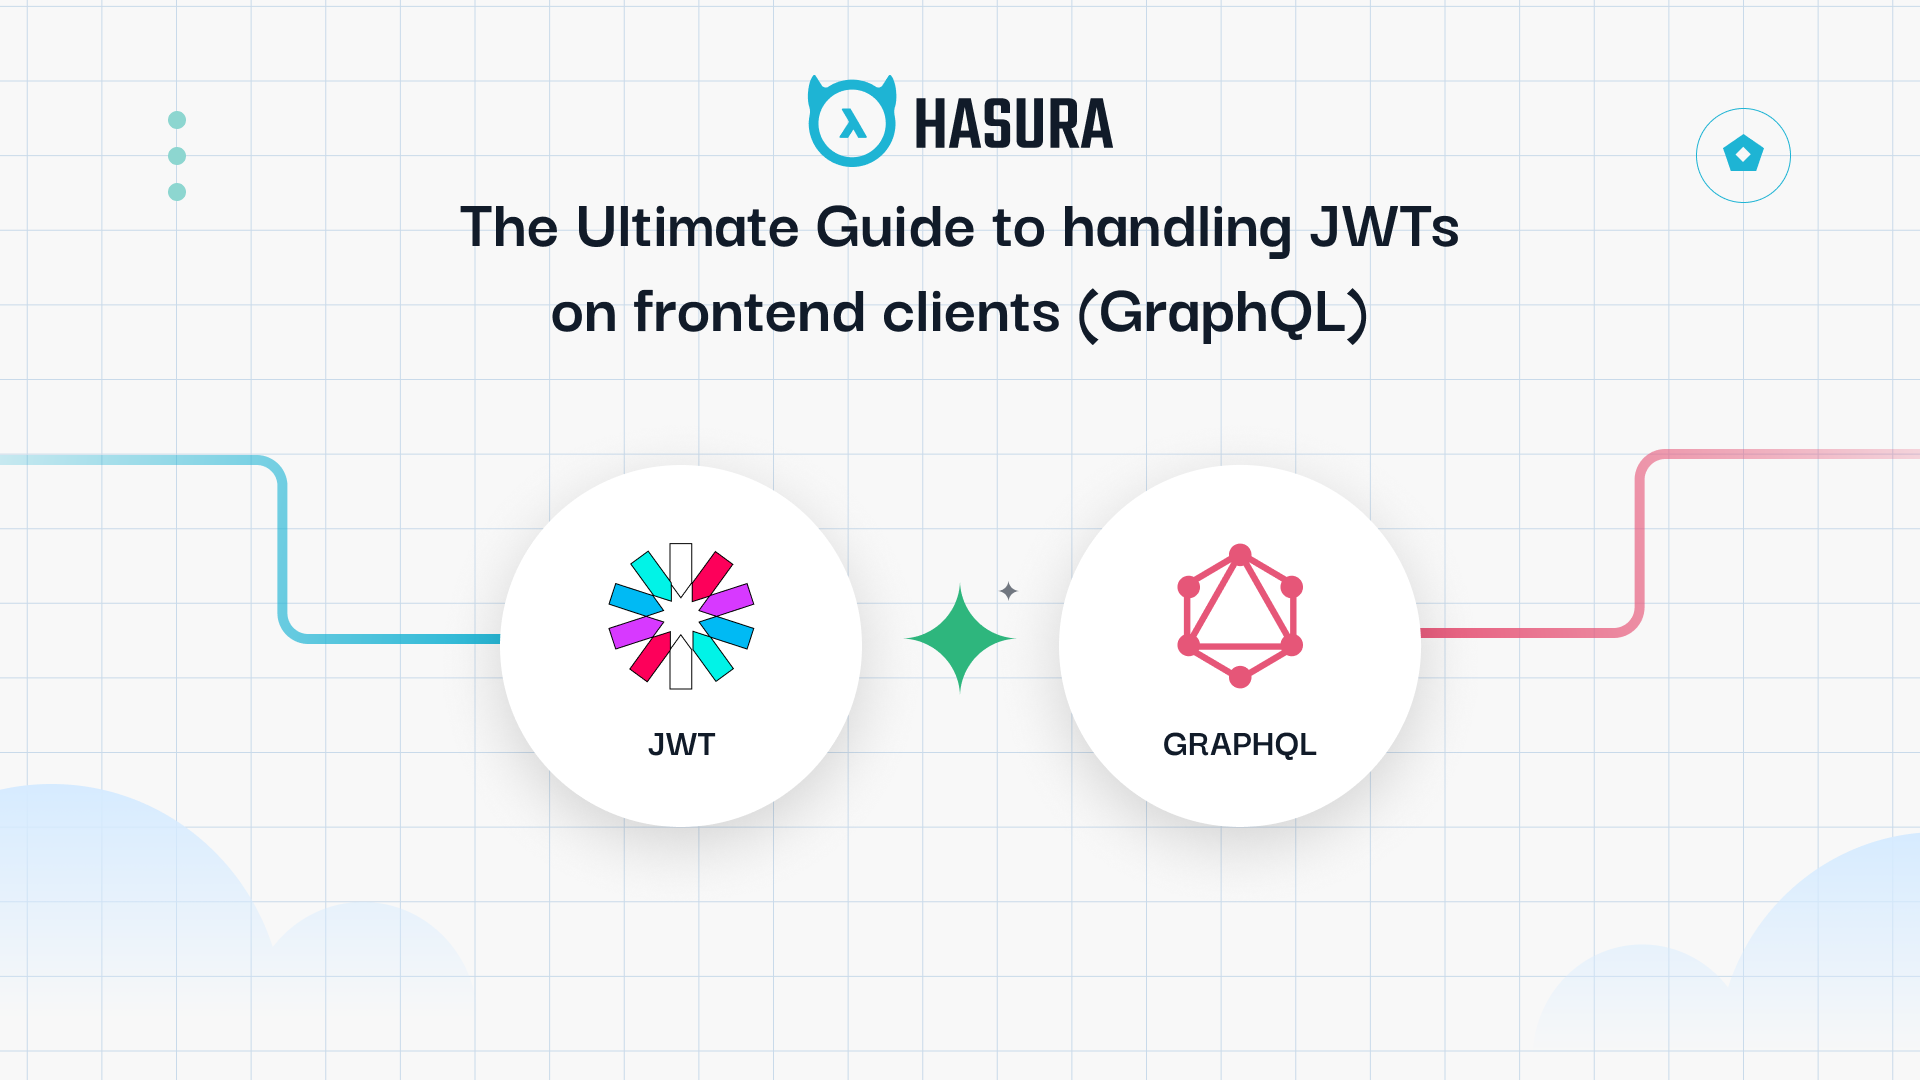 The Ultimate Guide to handling JWTs on frontend clients (GraphQL)